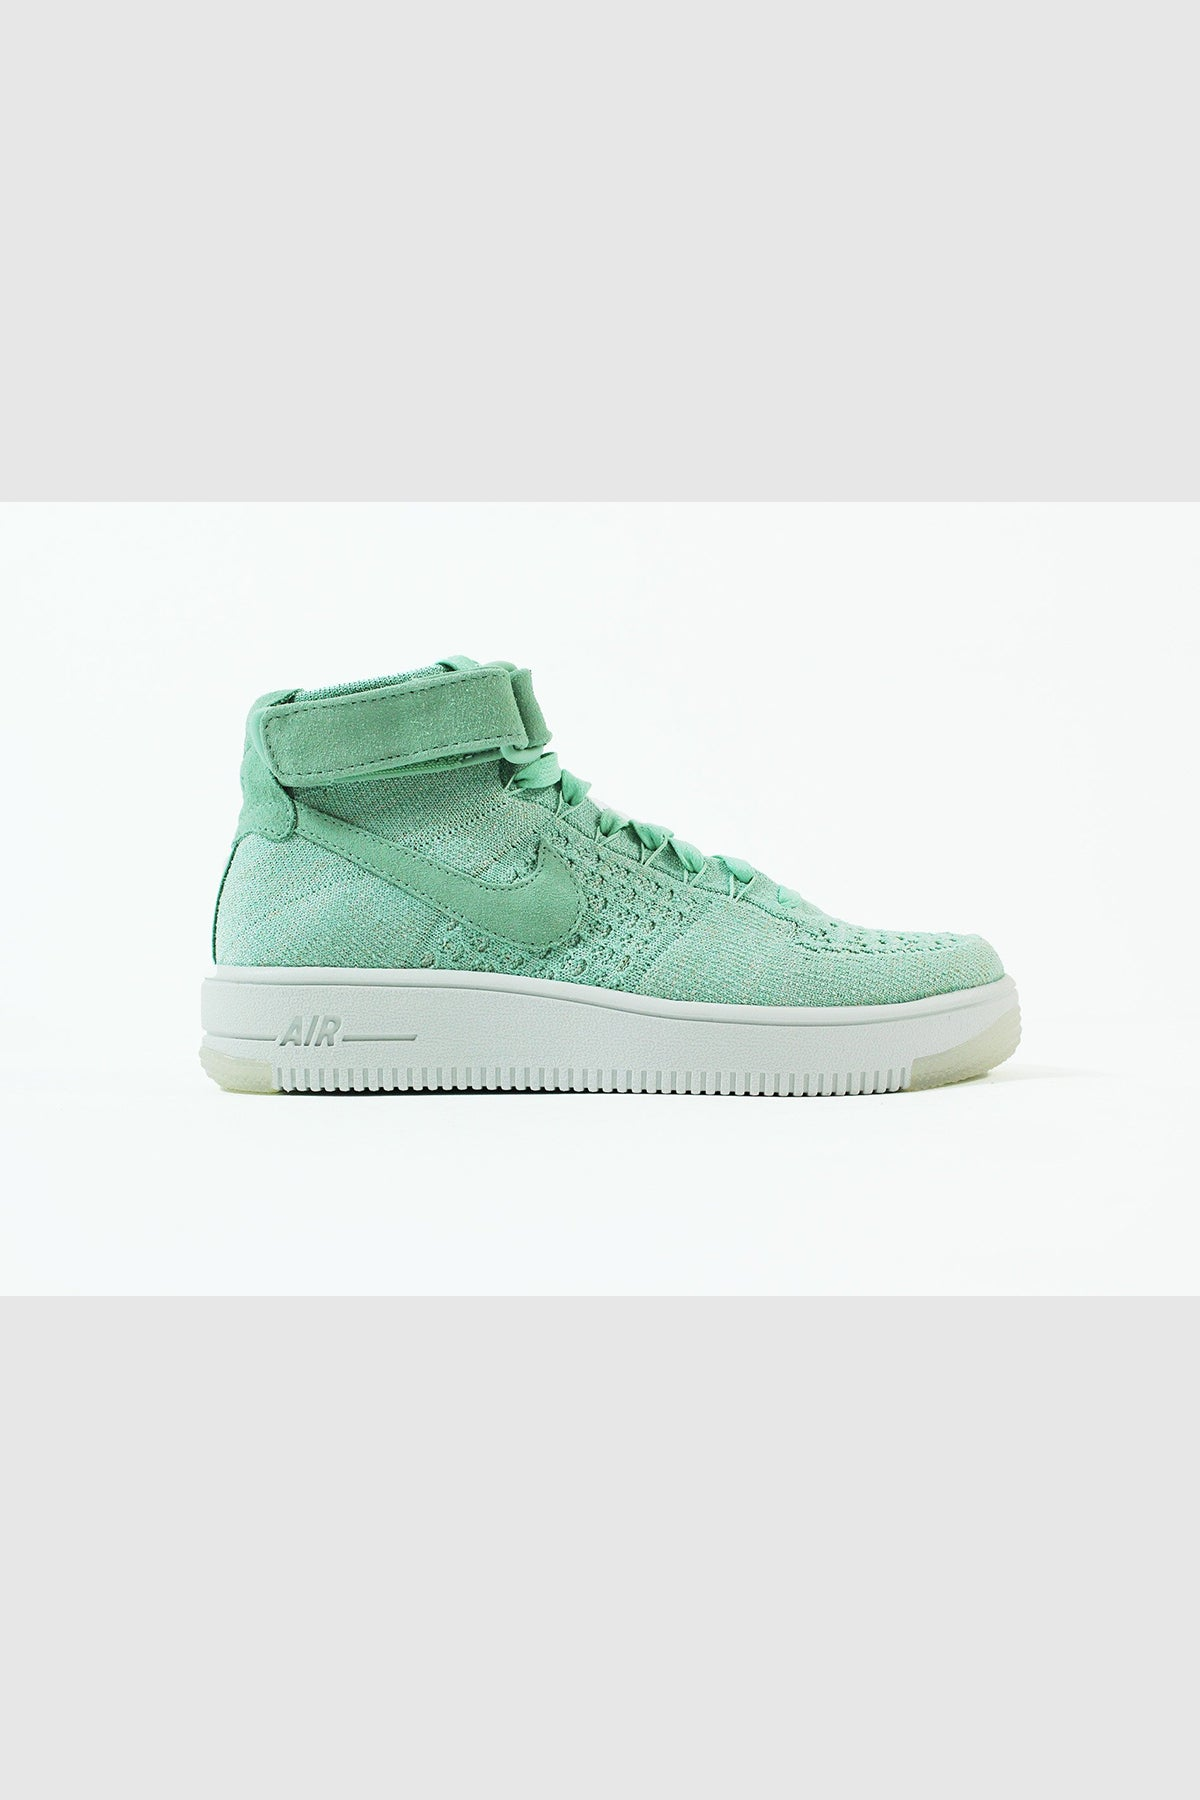 Nike Air Force 1 30th Anniversary Pearl Collection